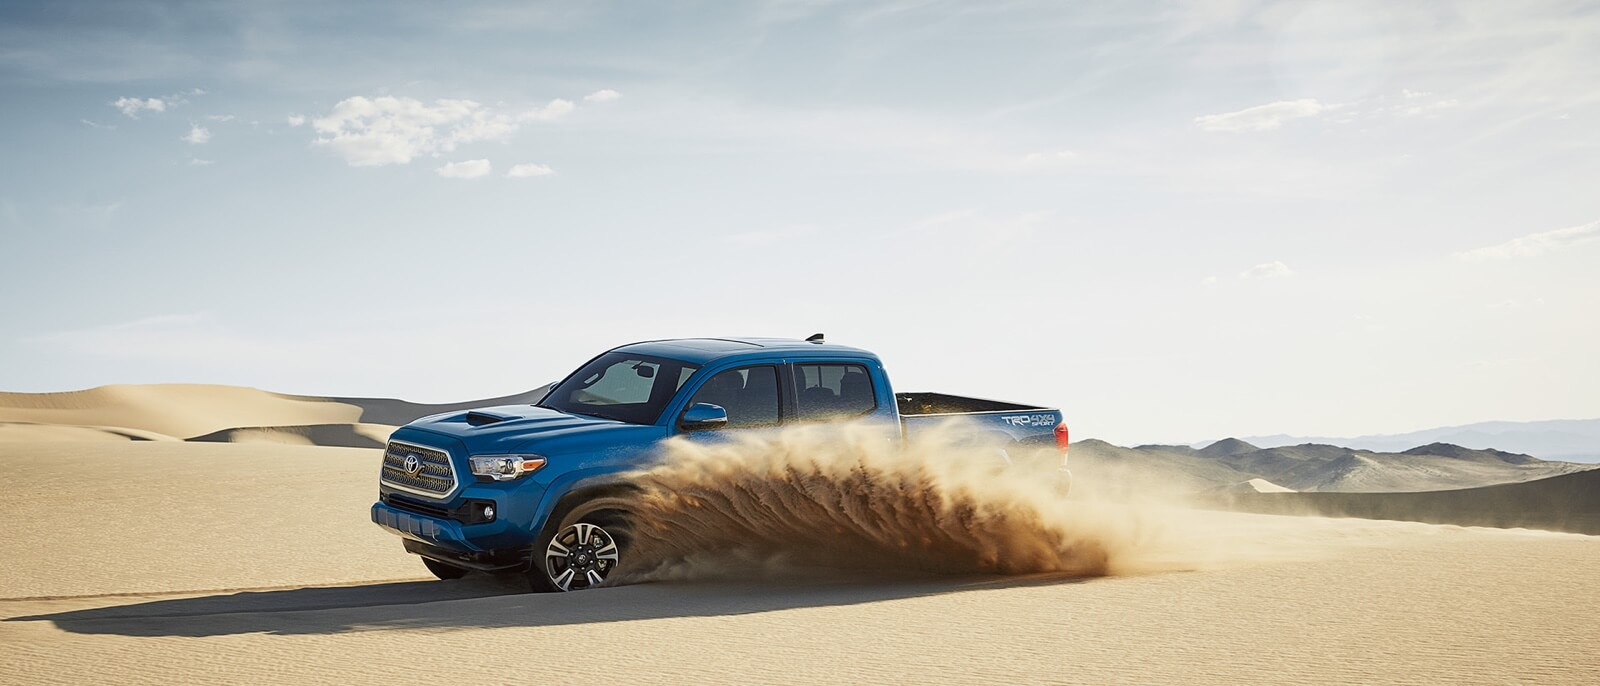 2017 Toyota Tacoma blue exterior model side view